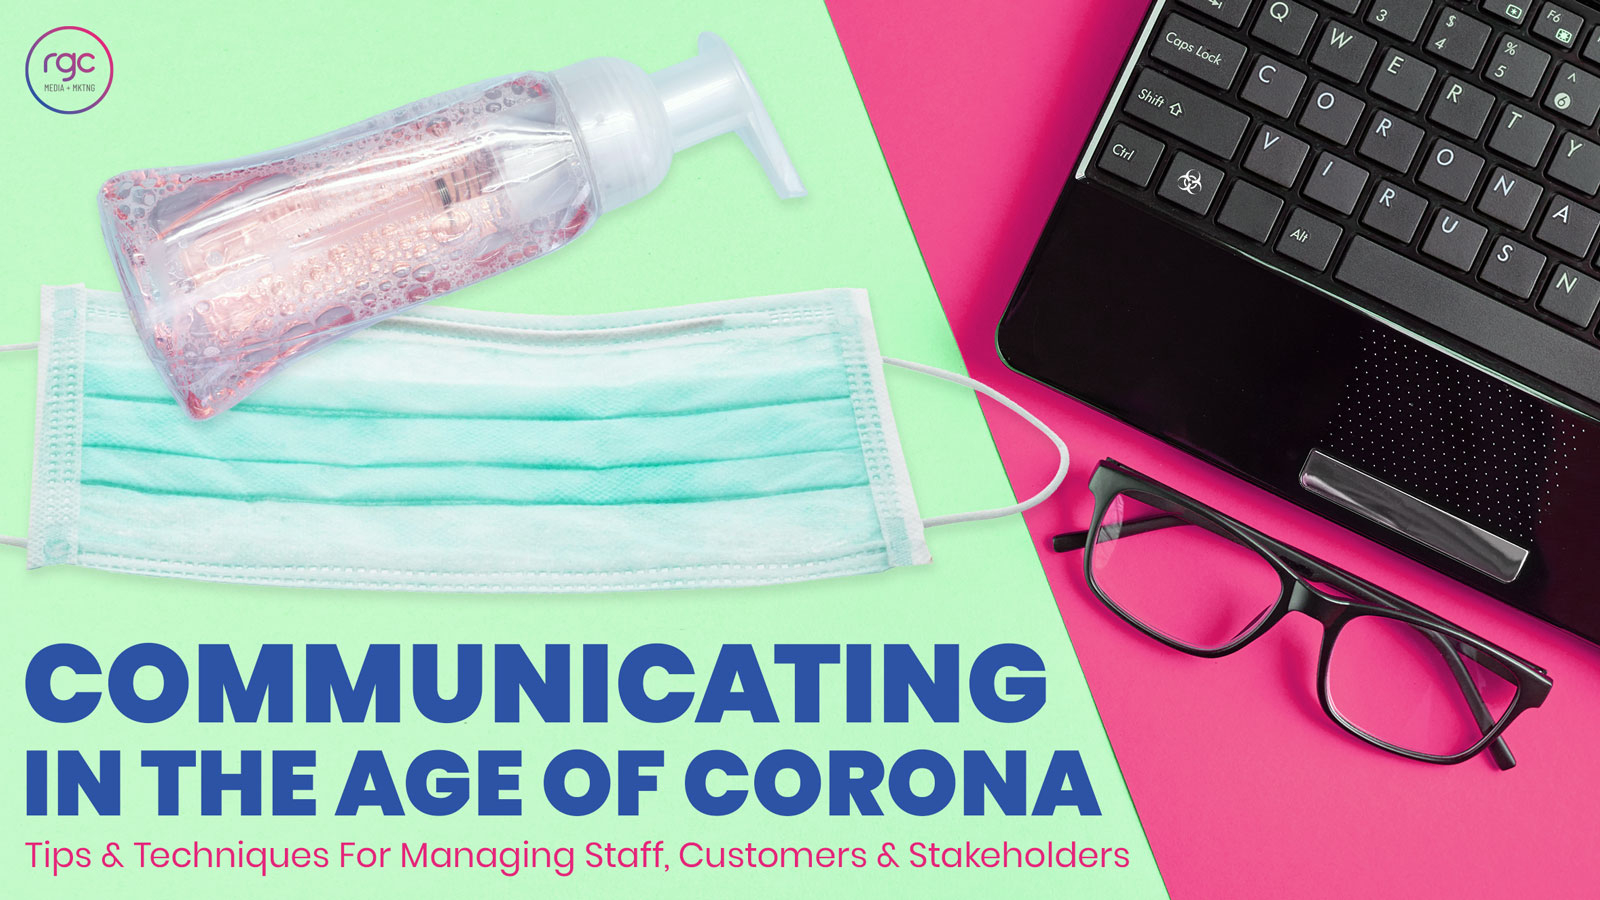 Communicating in the Age of Coronavirus – Tips and Techniques for Managing Staff, Customers and Stakeholders